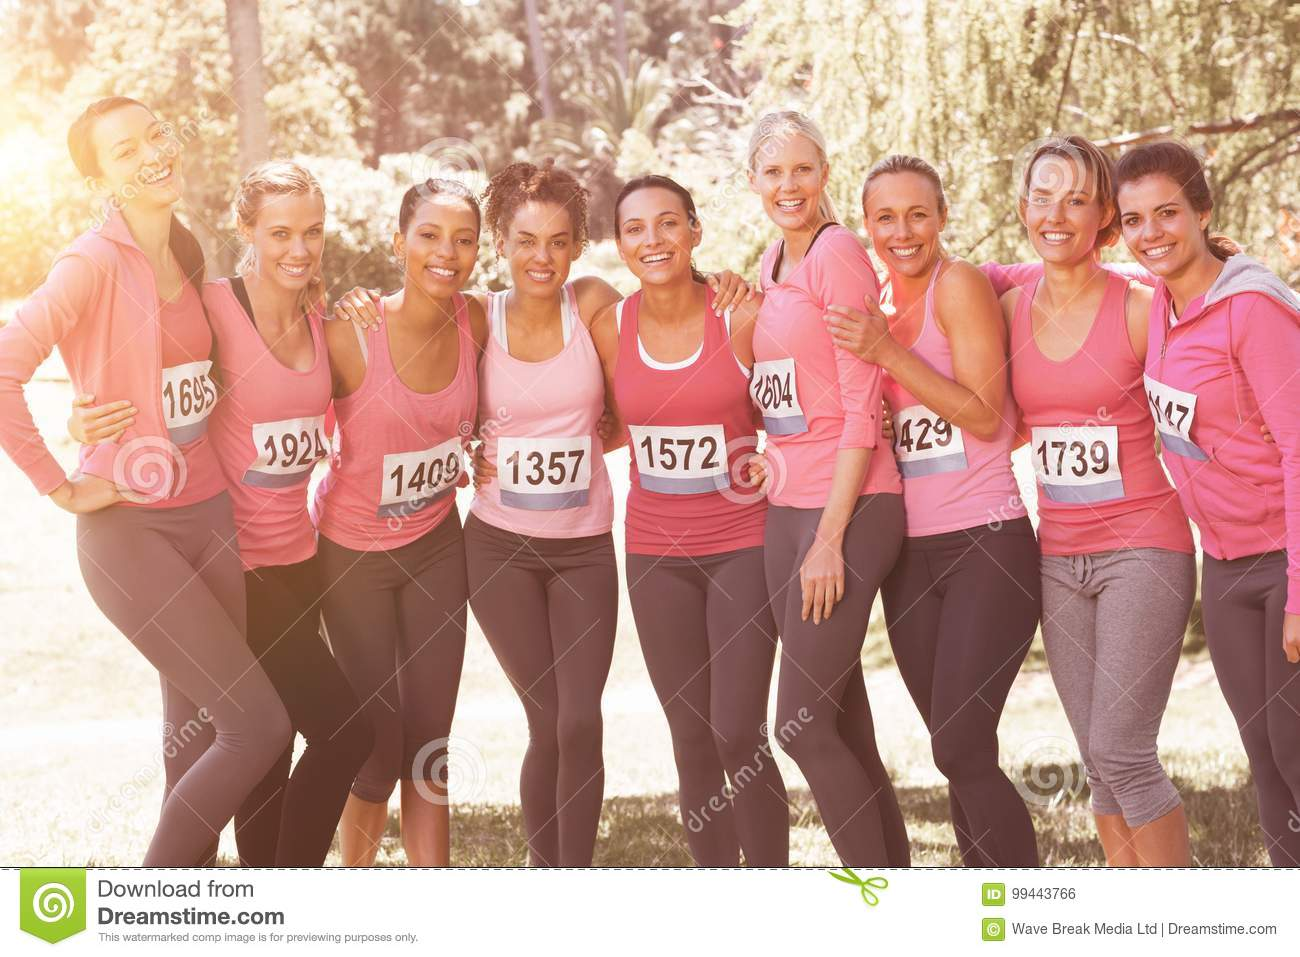 Salt lake breast cancer run